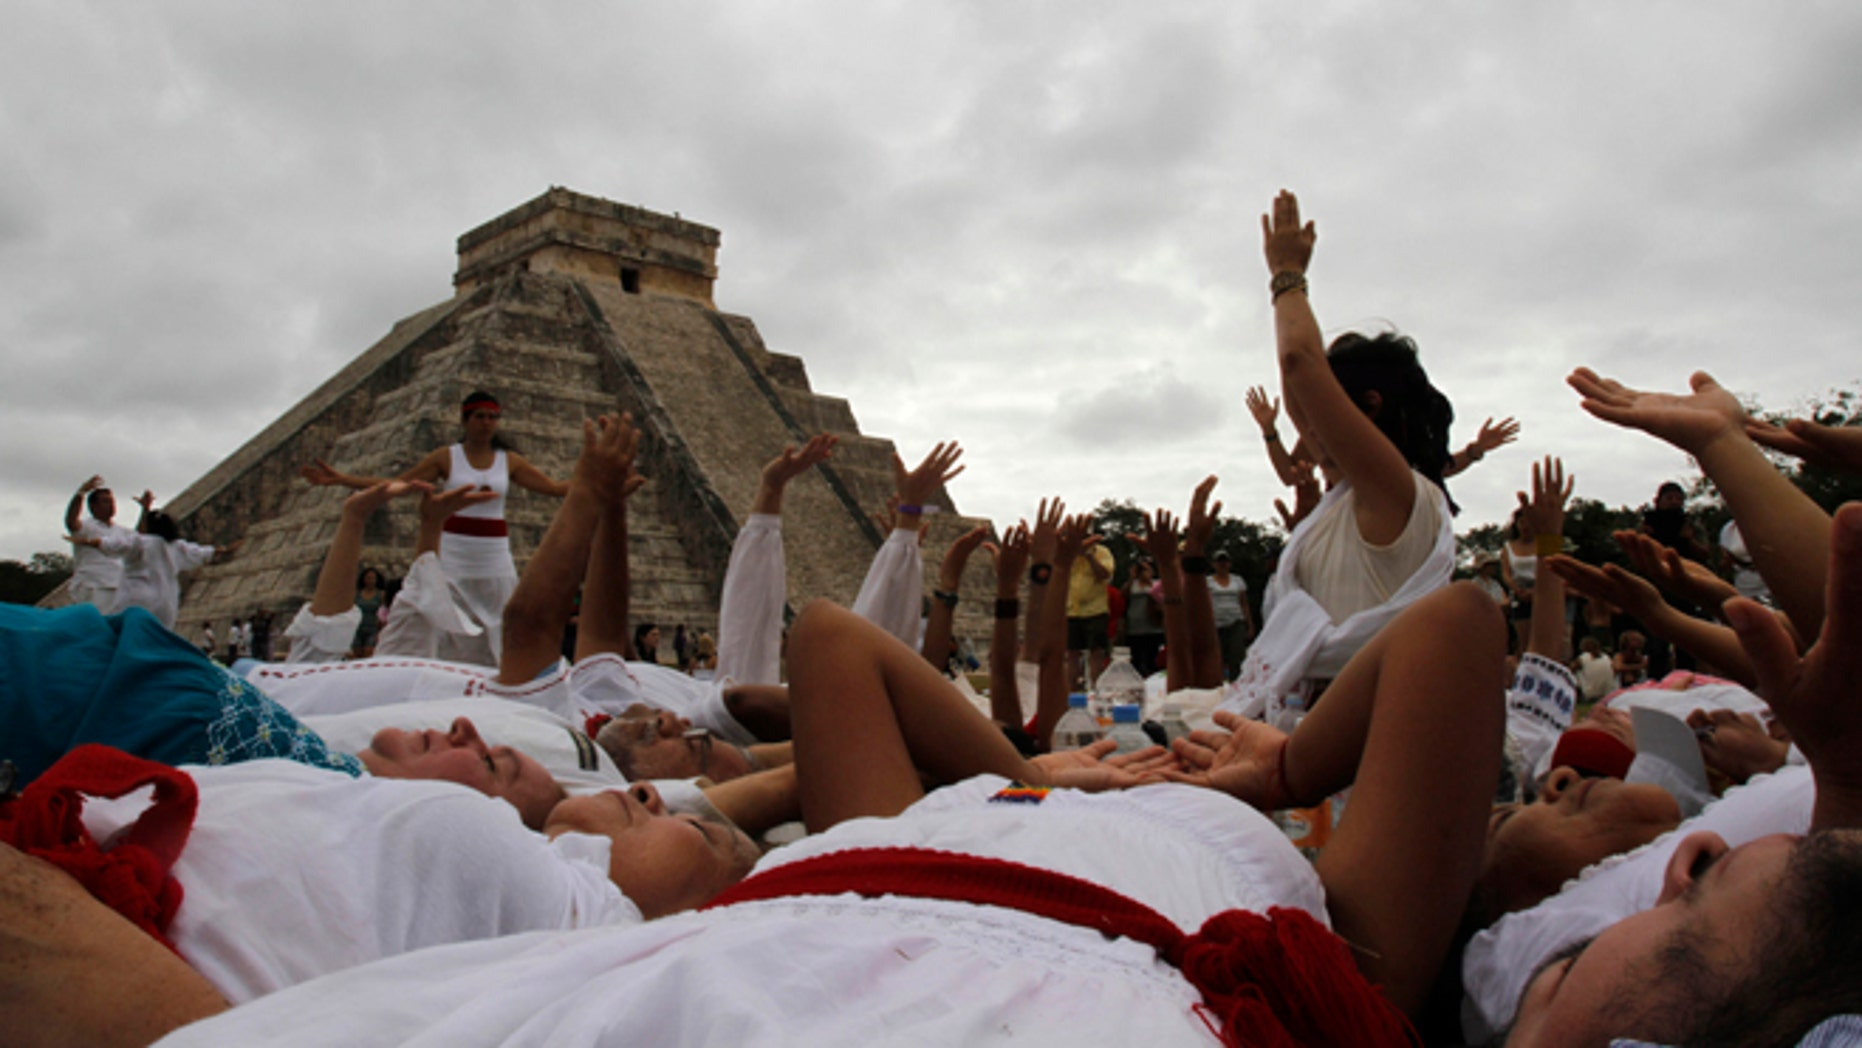 People participate in a ritual in fron of Kukulkan temple in Chichen Itza, Mexico, Friday, Dec. 21, 2012. At the ruins of the ancient Mayan city of Chichen Itza, thousands chanted, danced and otherwise frolicked around ceremonial fires and pyramids to mark the conclusion of a vast, 5,125-year cycle in the Mayan calendar. (AP Photo/Israel Leal)